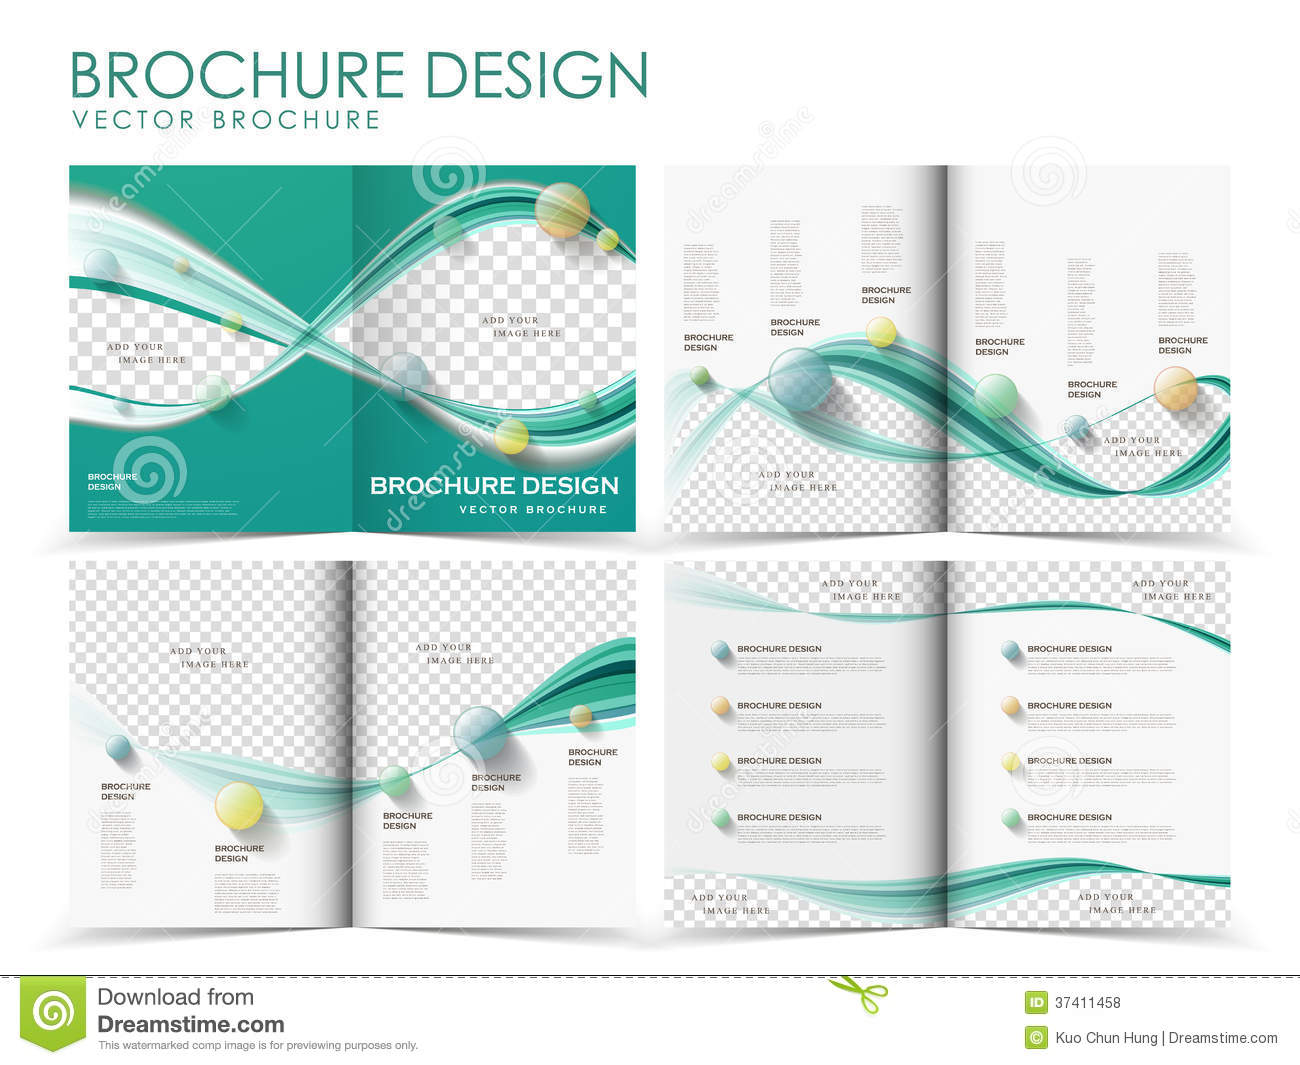 Vector Brochure Layout Design Template Royalty Free Stock Photos ...